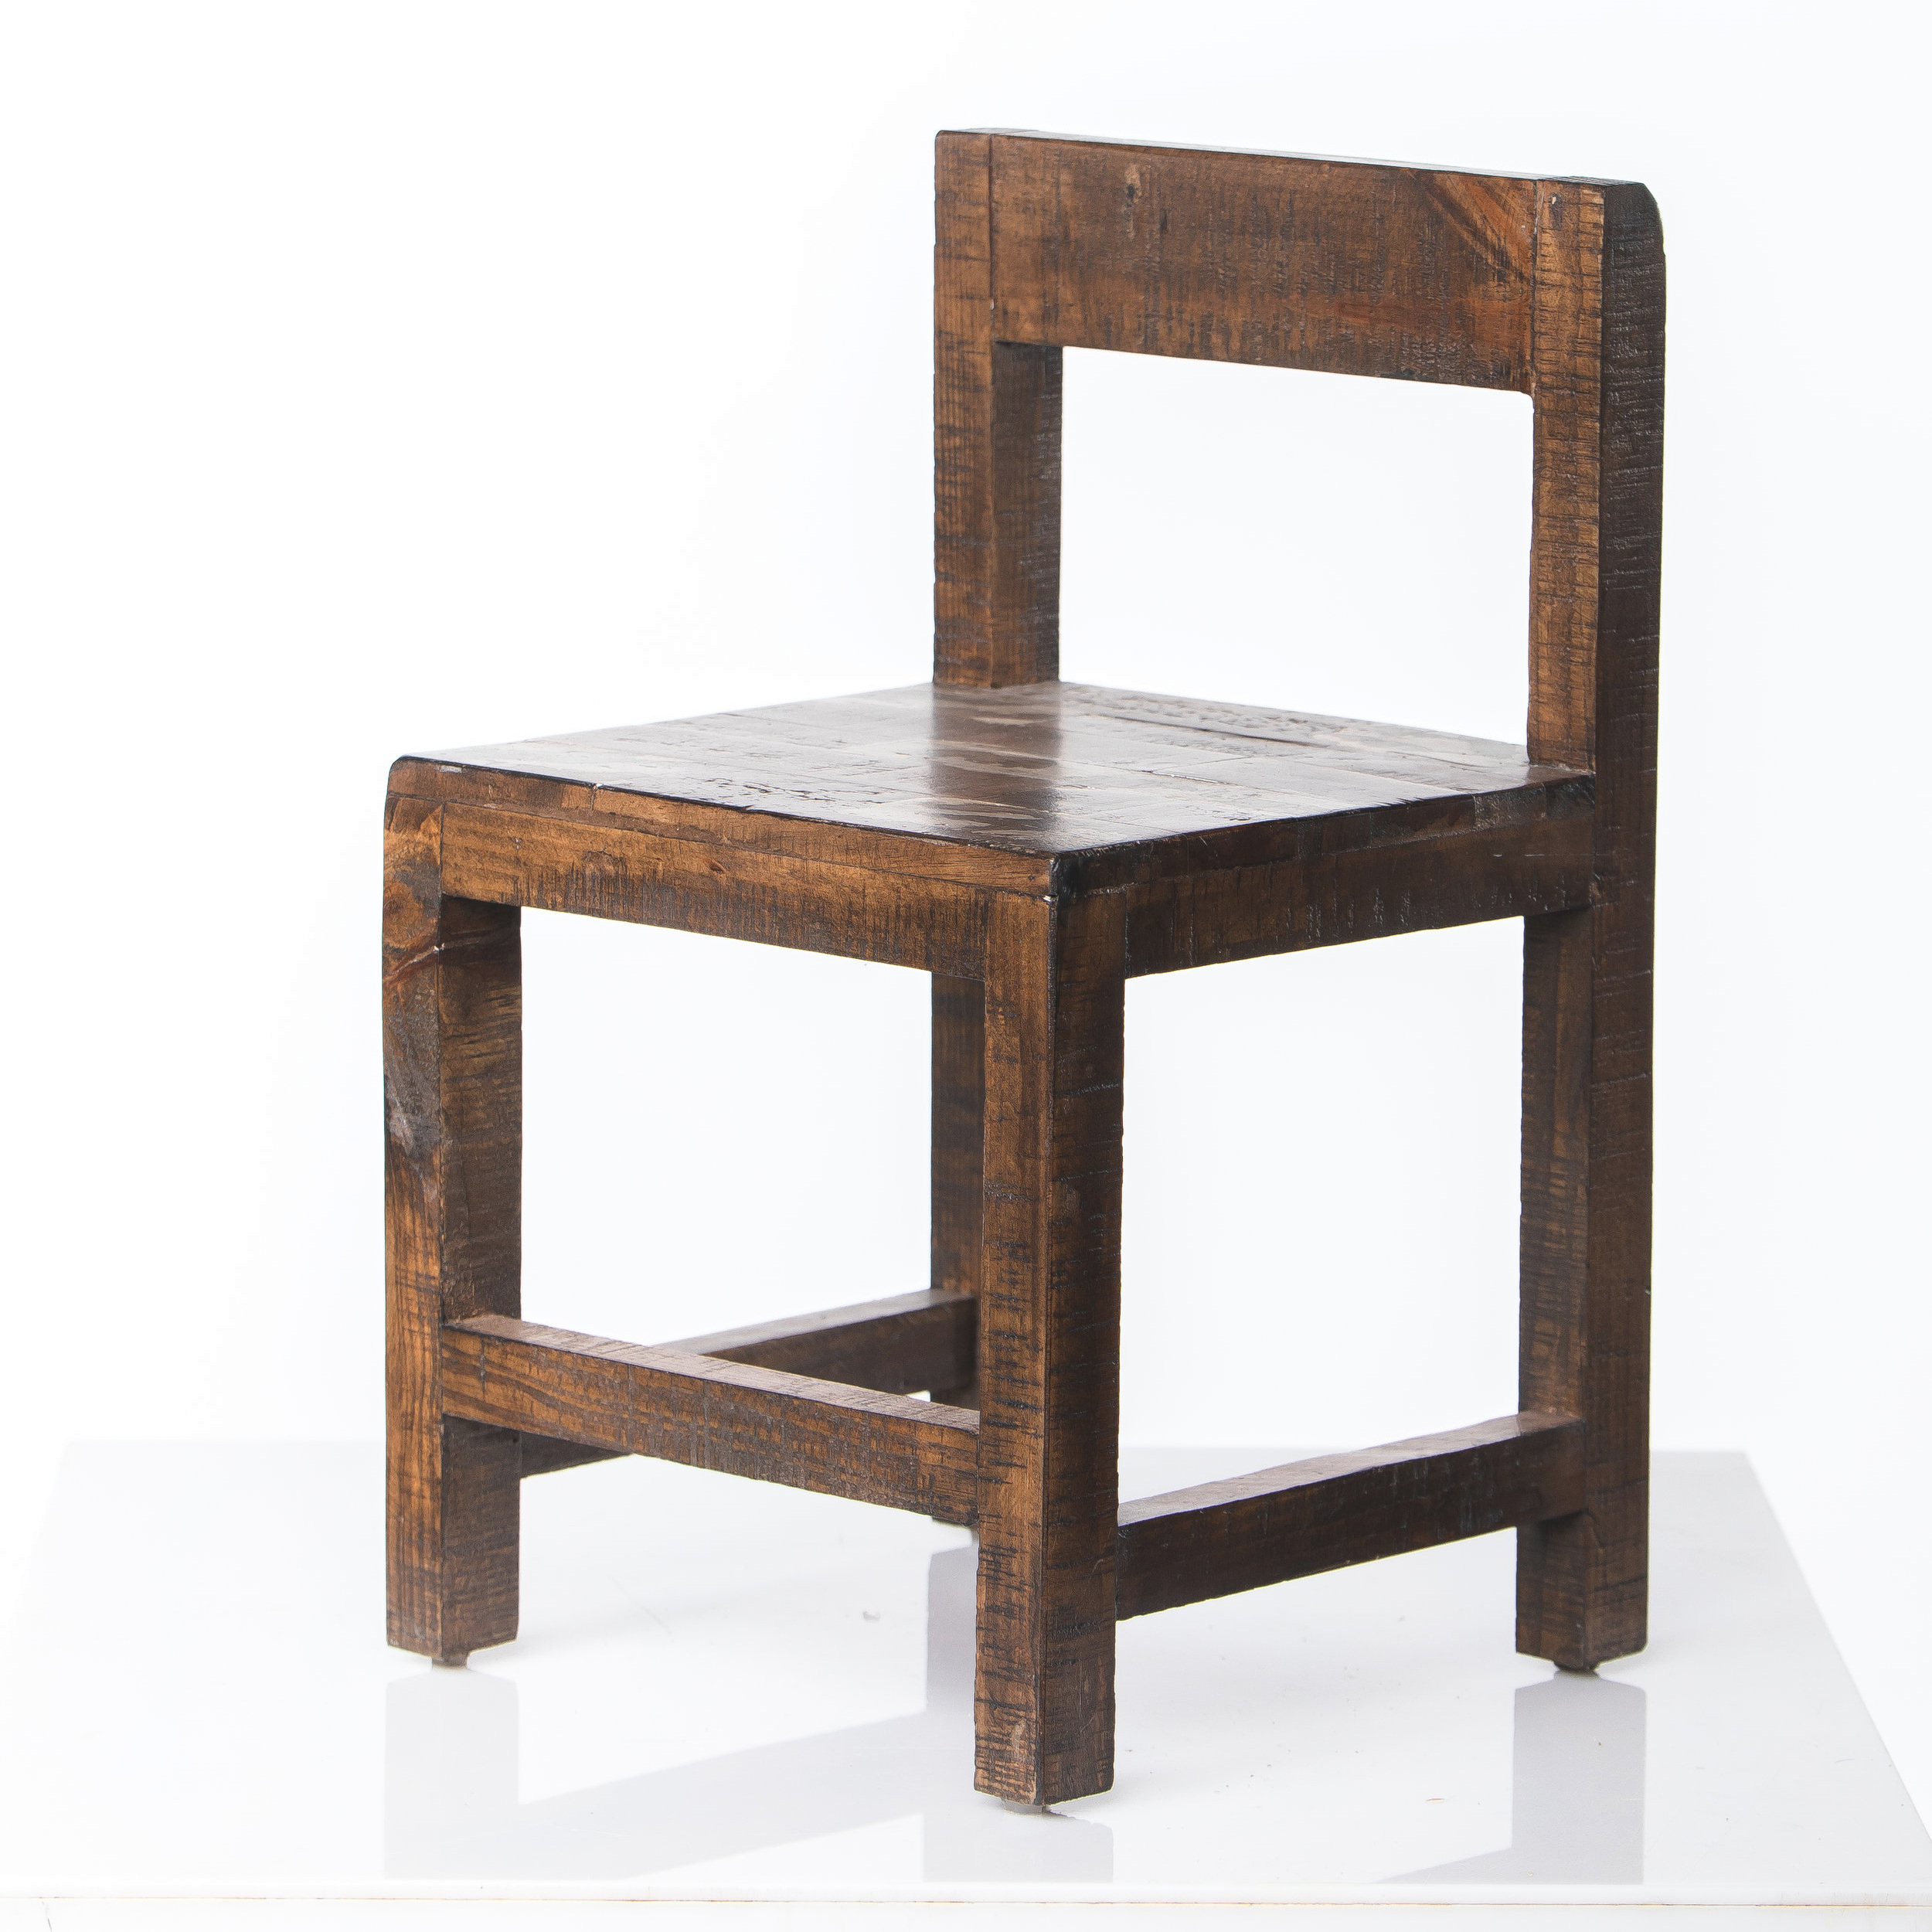 CHILDREN'S WOODEN STOOL